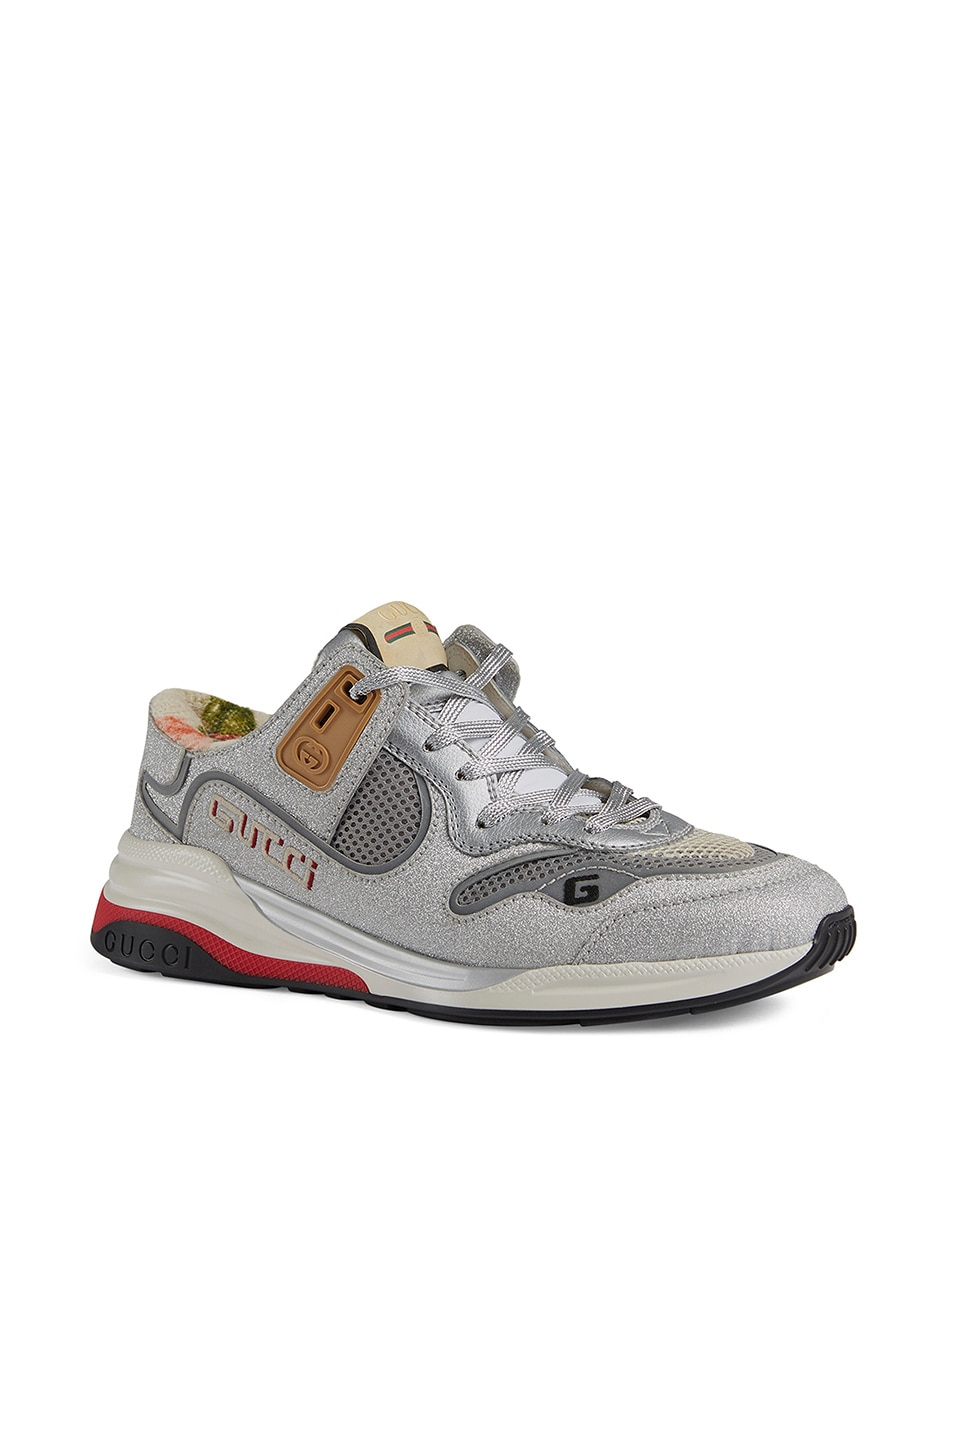 Image 2 of Gucci G Line Sneakers in Silver